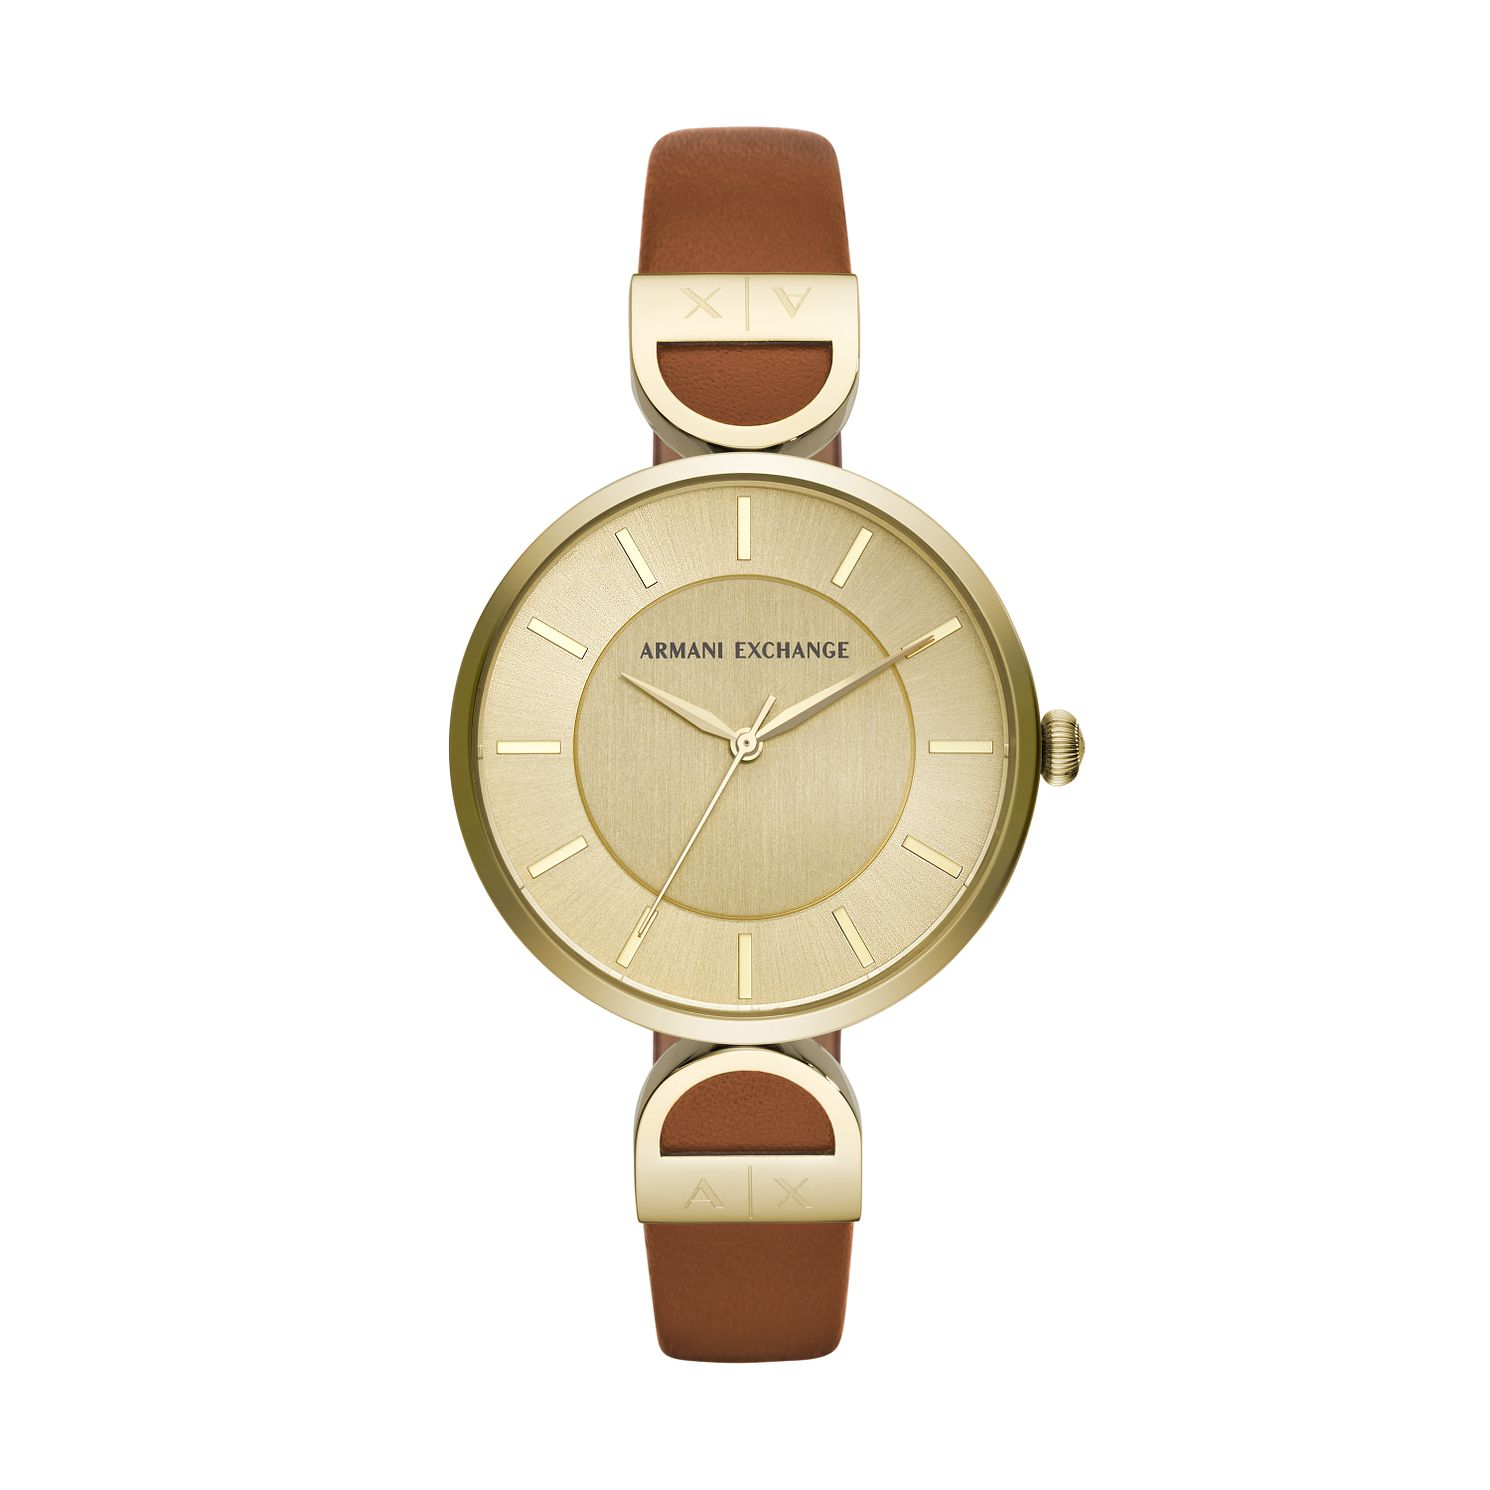 Armani Exchange Brown & Gold Leather Strap Watch Gold Dial - Product number 9431357